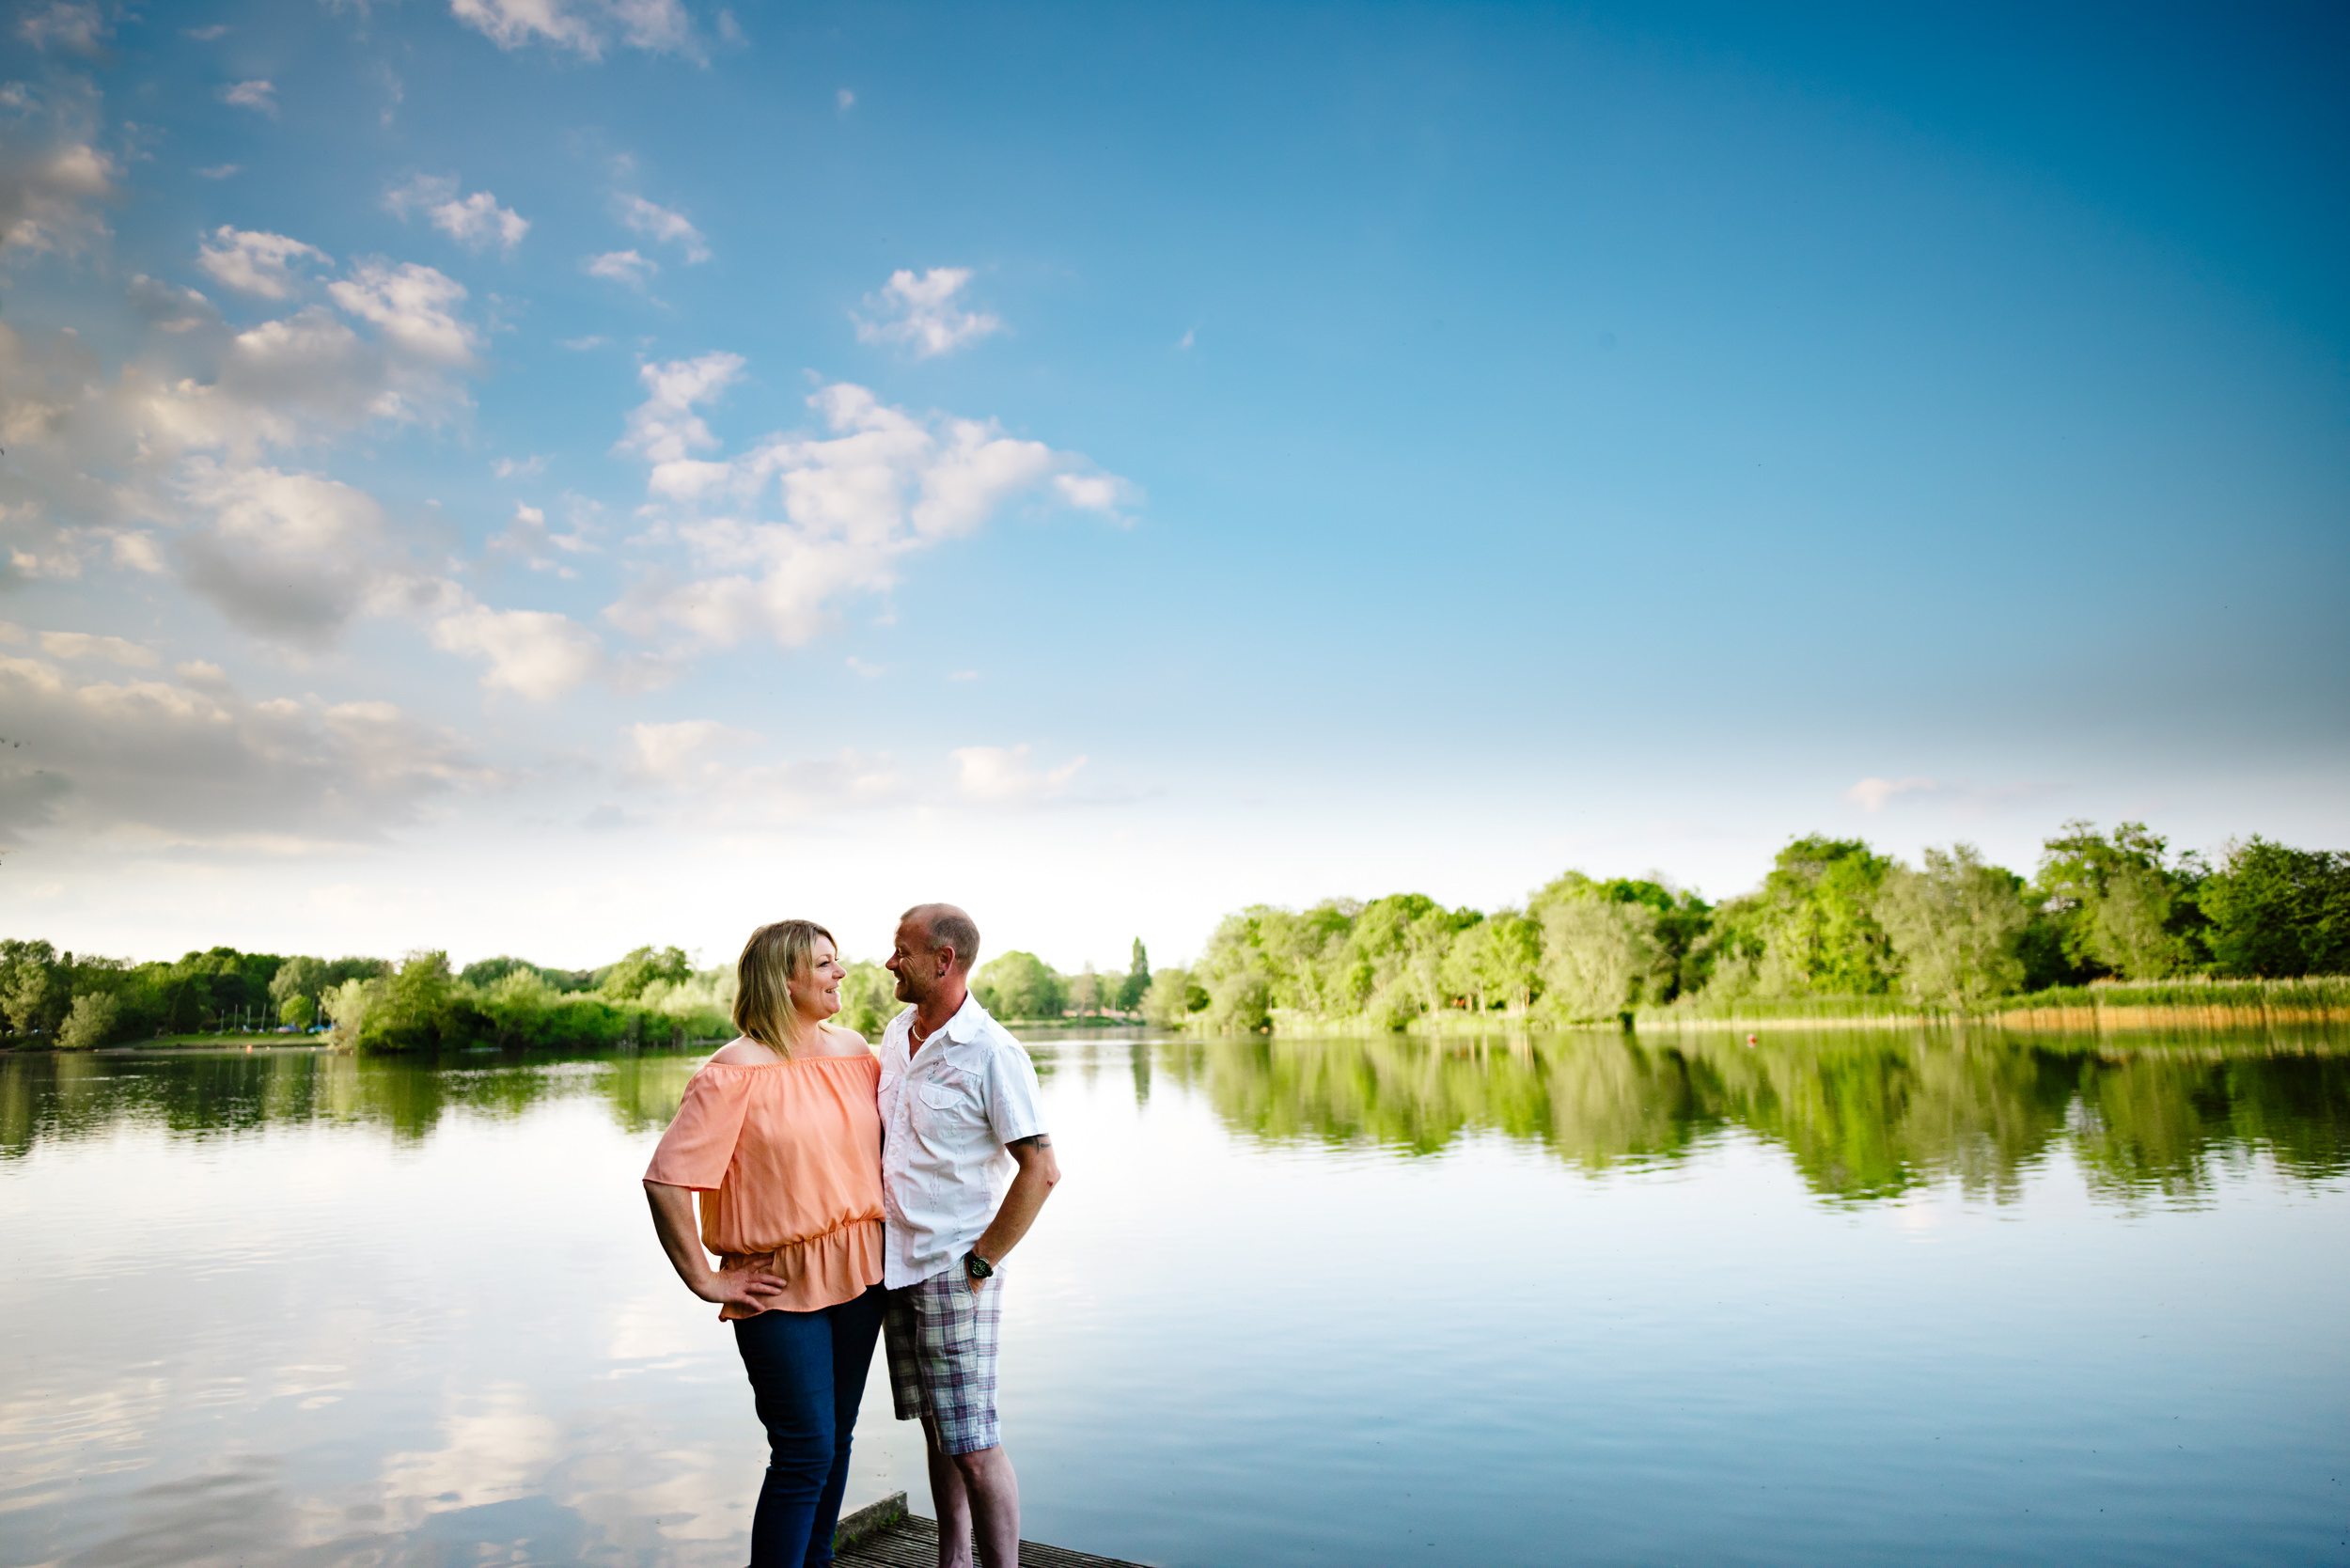 Couple on a jetty into a serene lake laughing